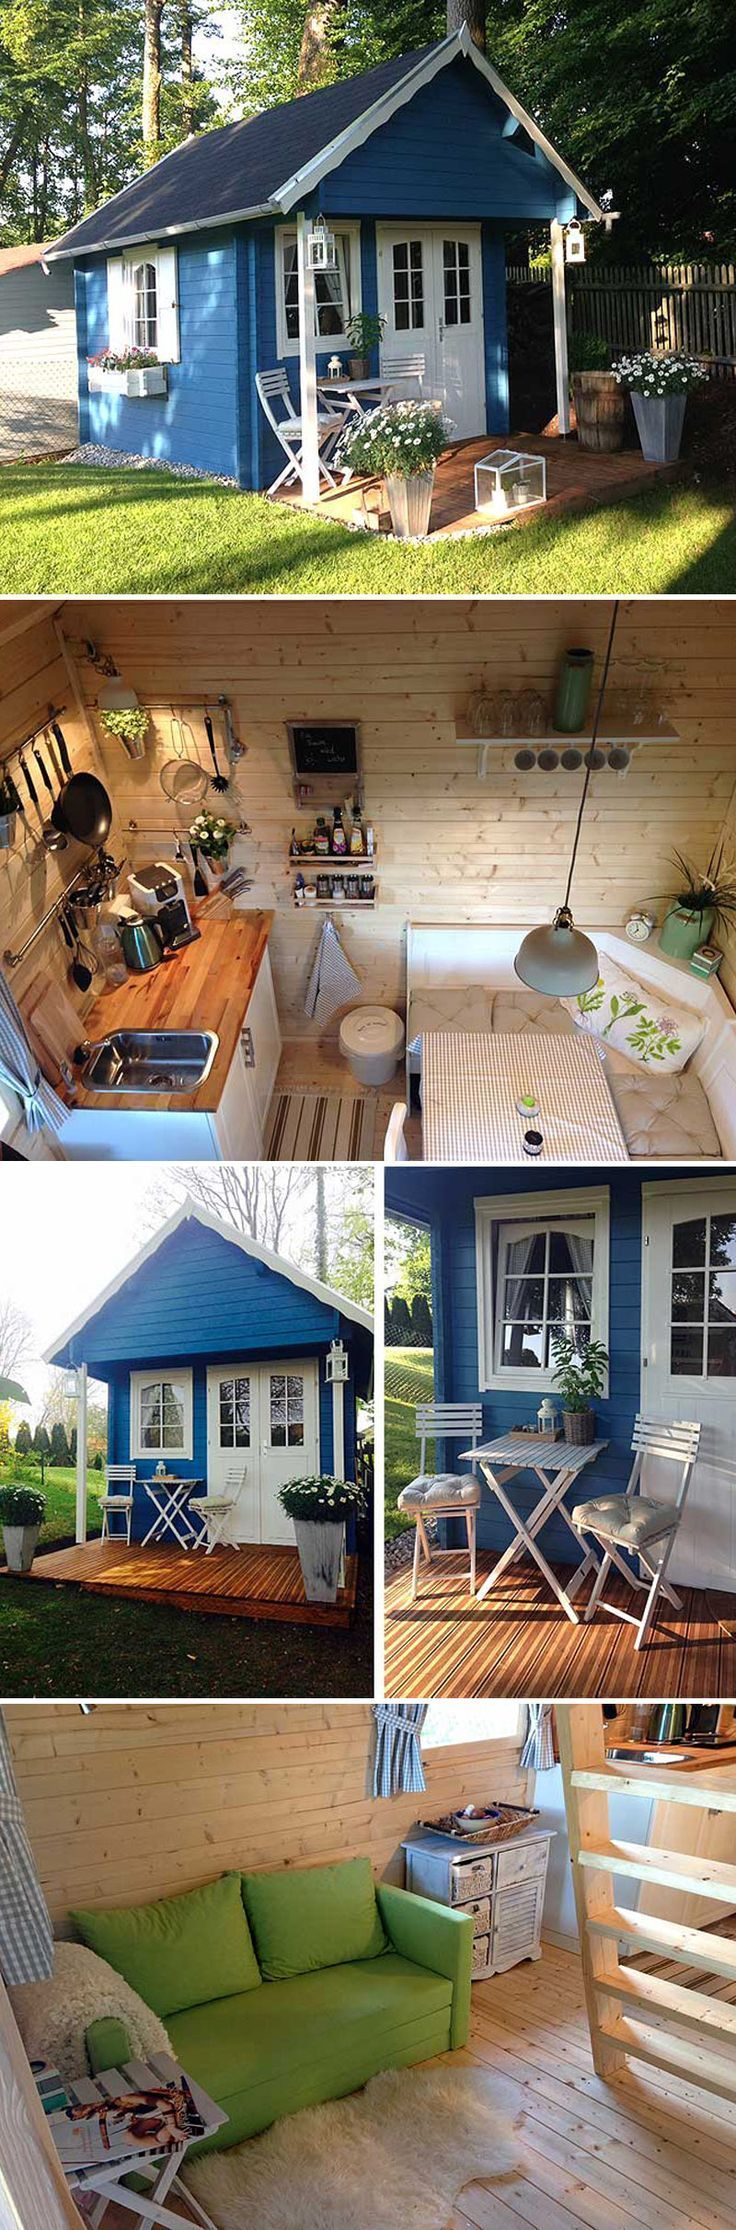 A Garden House As A Small House Offers Advantages For The Horstmann Family Advantages Garden Horstmann House Offe Shed Homes Diy Cabin Tiny House Design